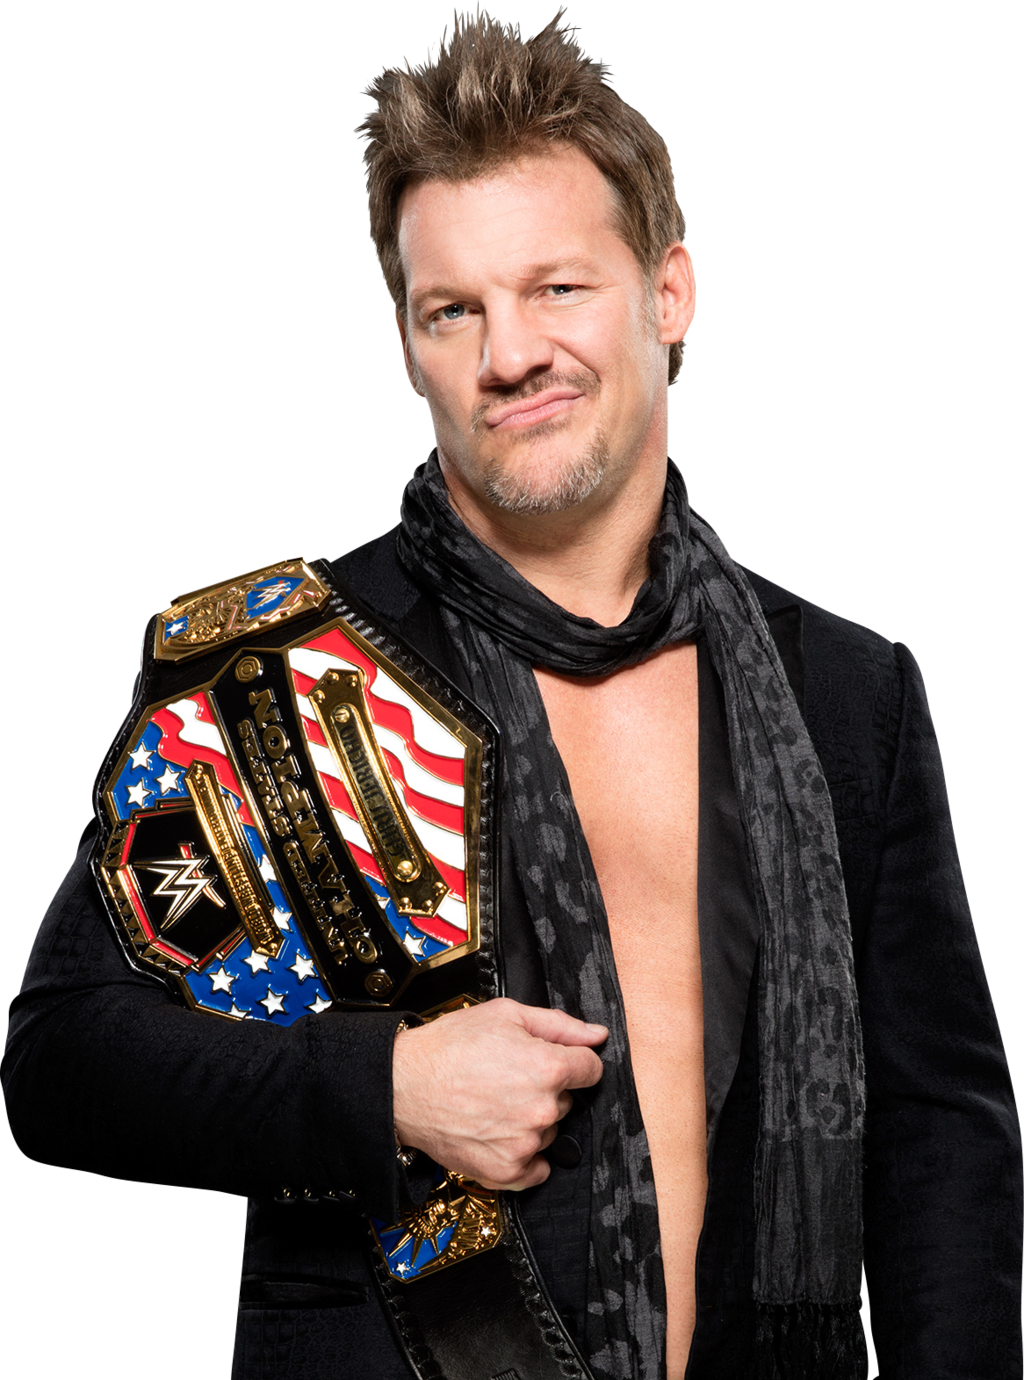 Wwe Chris Jericho Png By Double A1698 On Deviantart Wwe Chris Jericho Chris Jericho Jericho Wwe